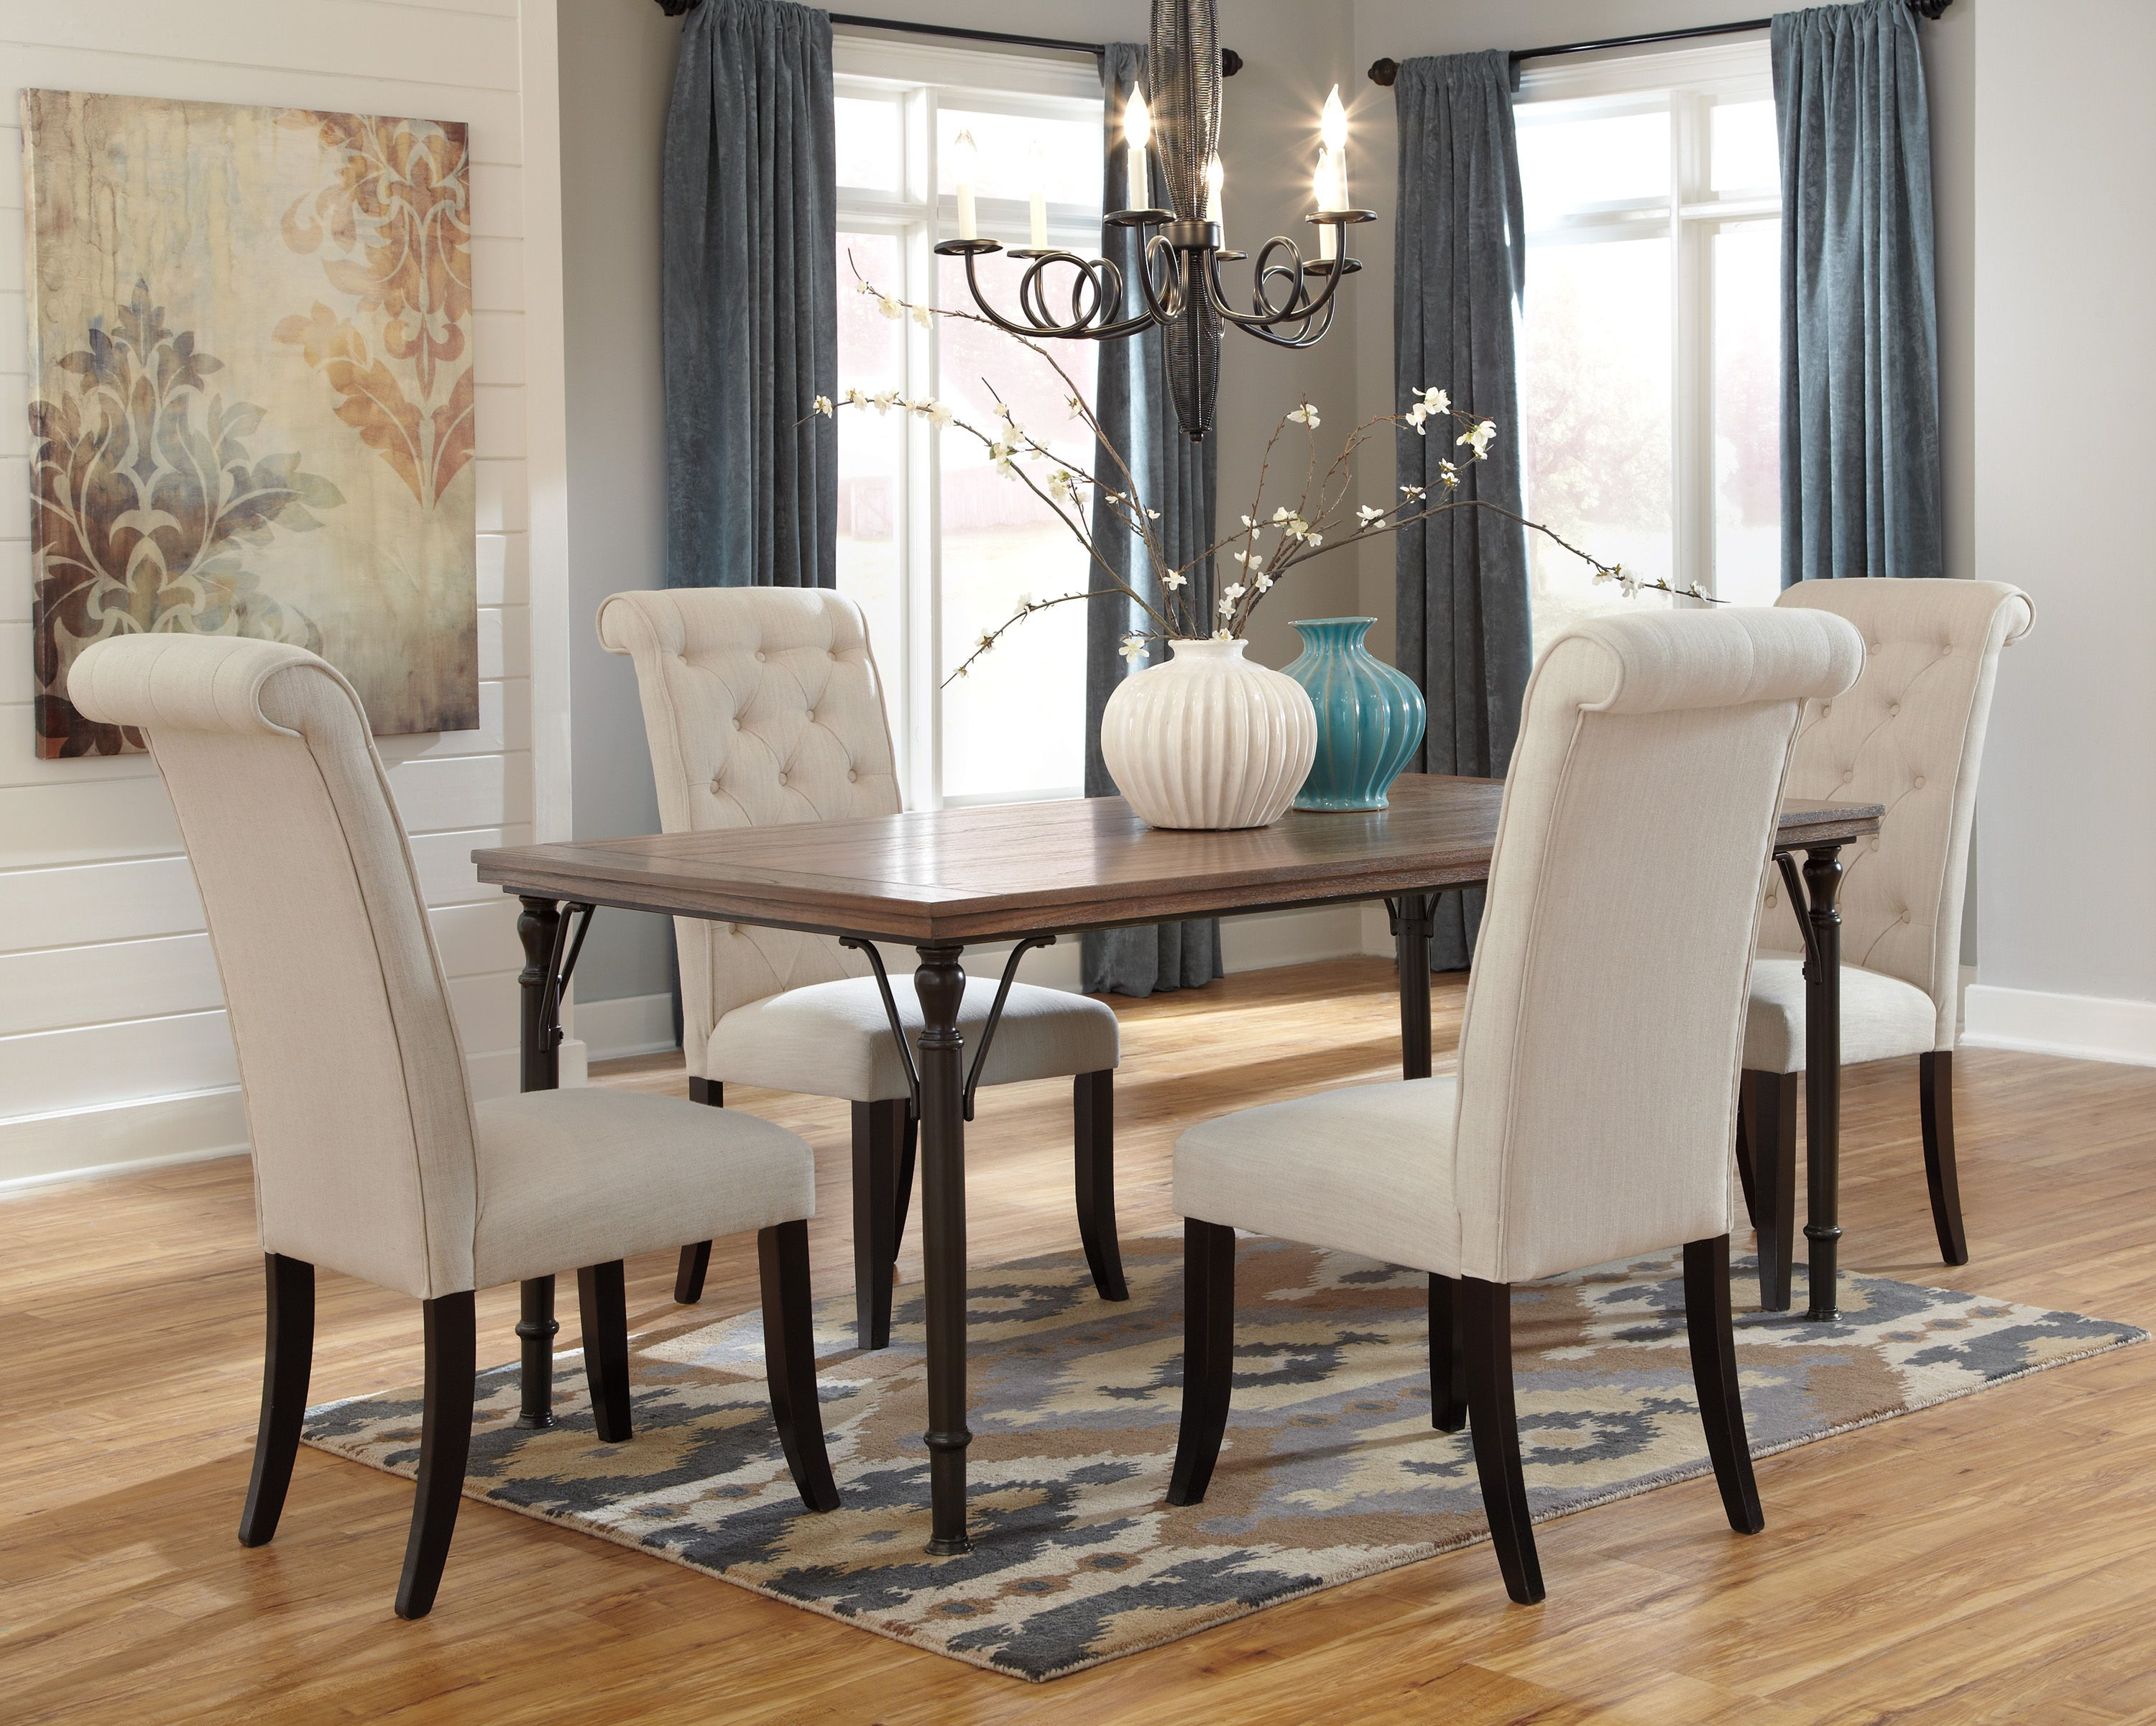 This Is Such A Beautiful Set For A Dining Room With Any Style Of New Dining Room Chair Set Of 4 Inspiration